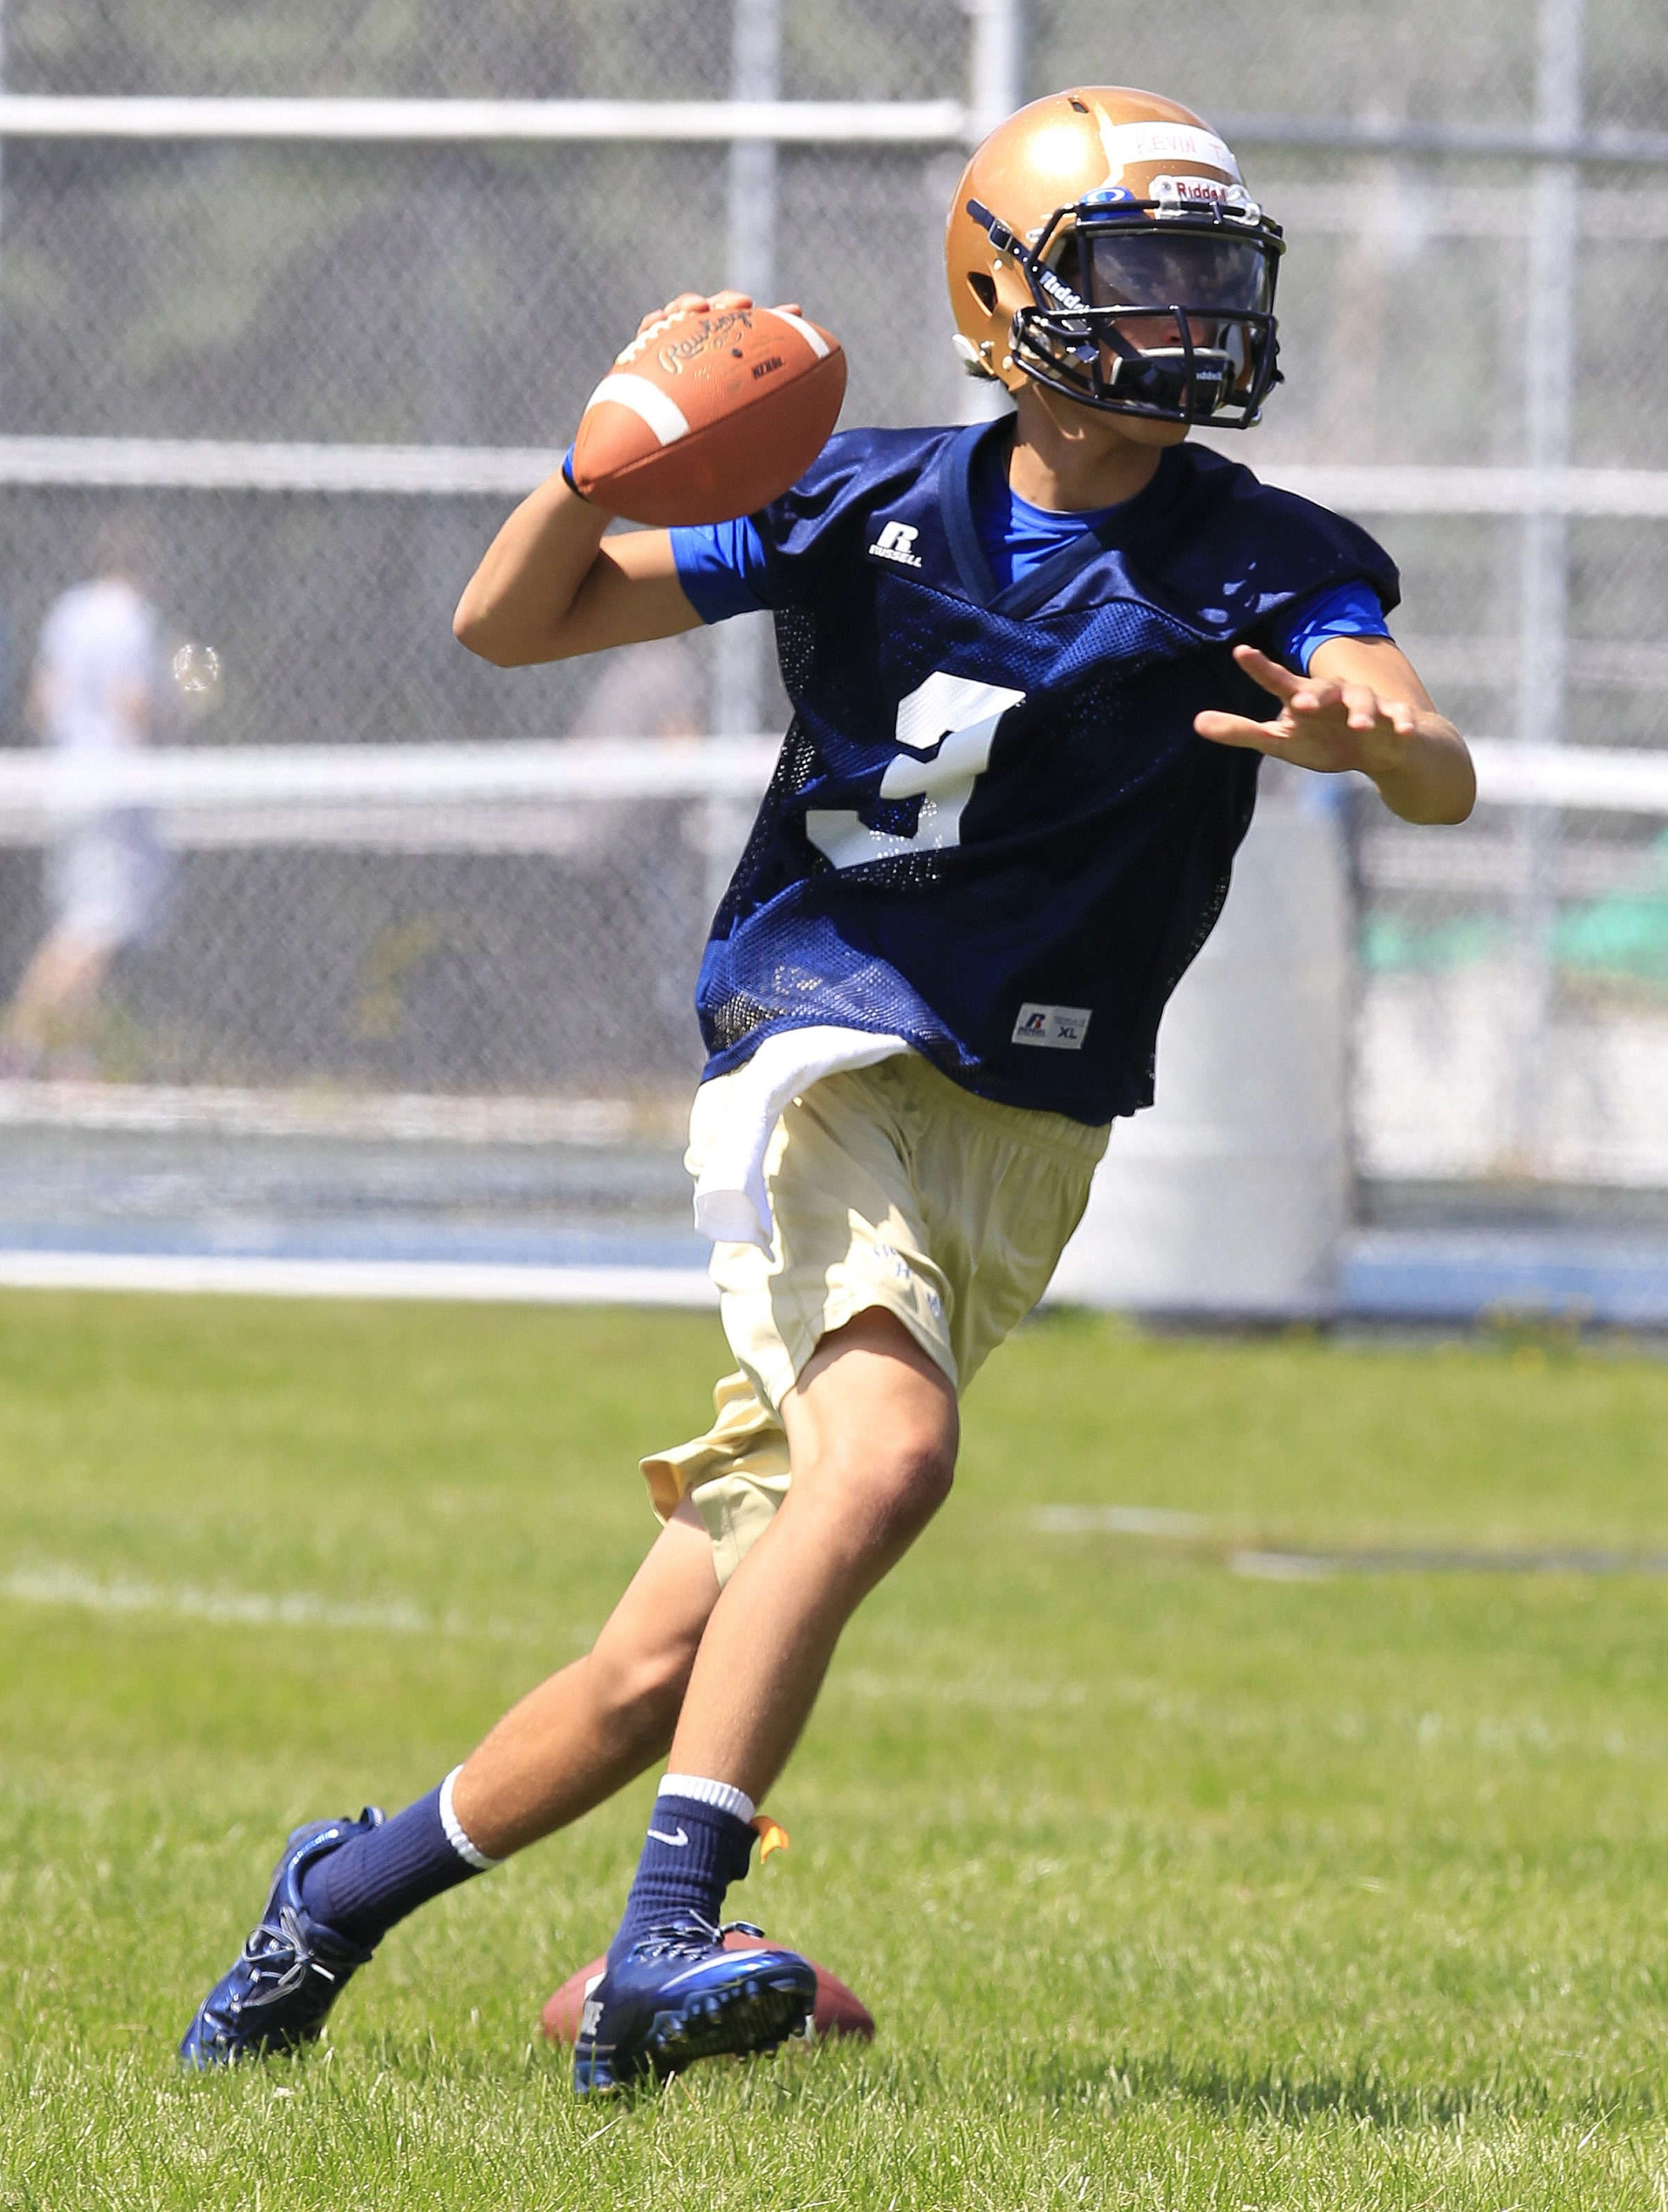 Sweet Home quarterback, KevinTorrillo during practice on Monday, Aug. 18, 2014.  (Harry Scull Jr/Buffalo News)